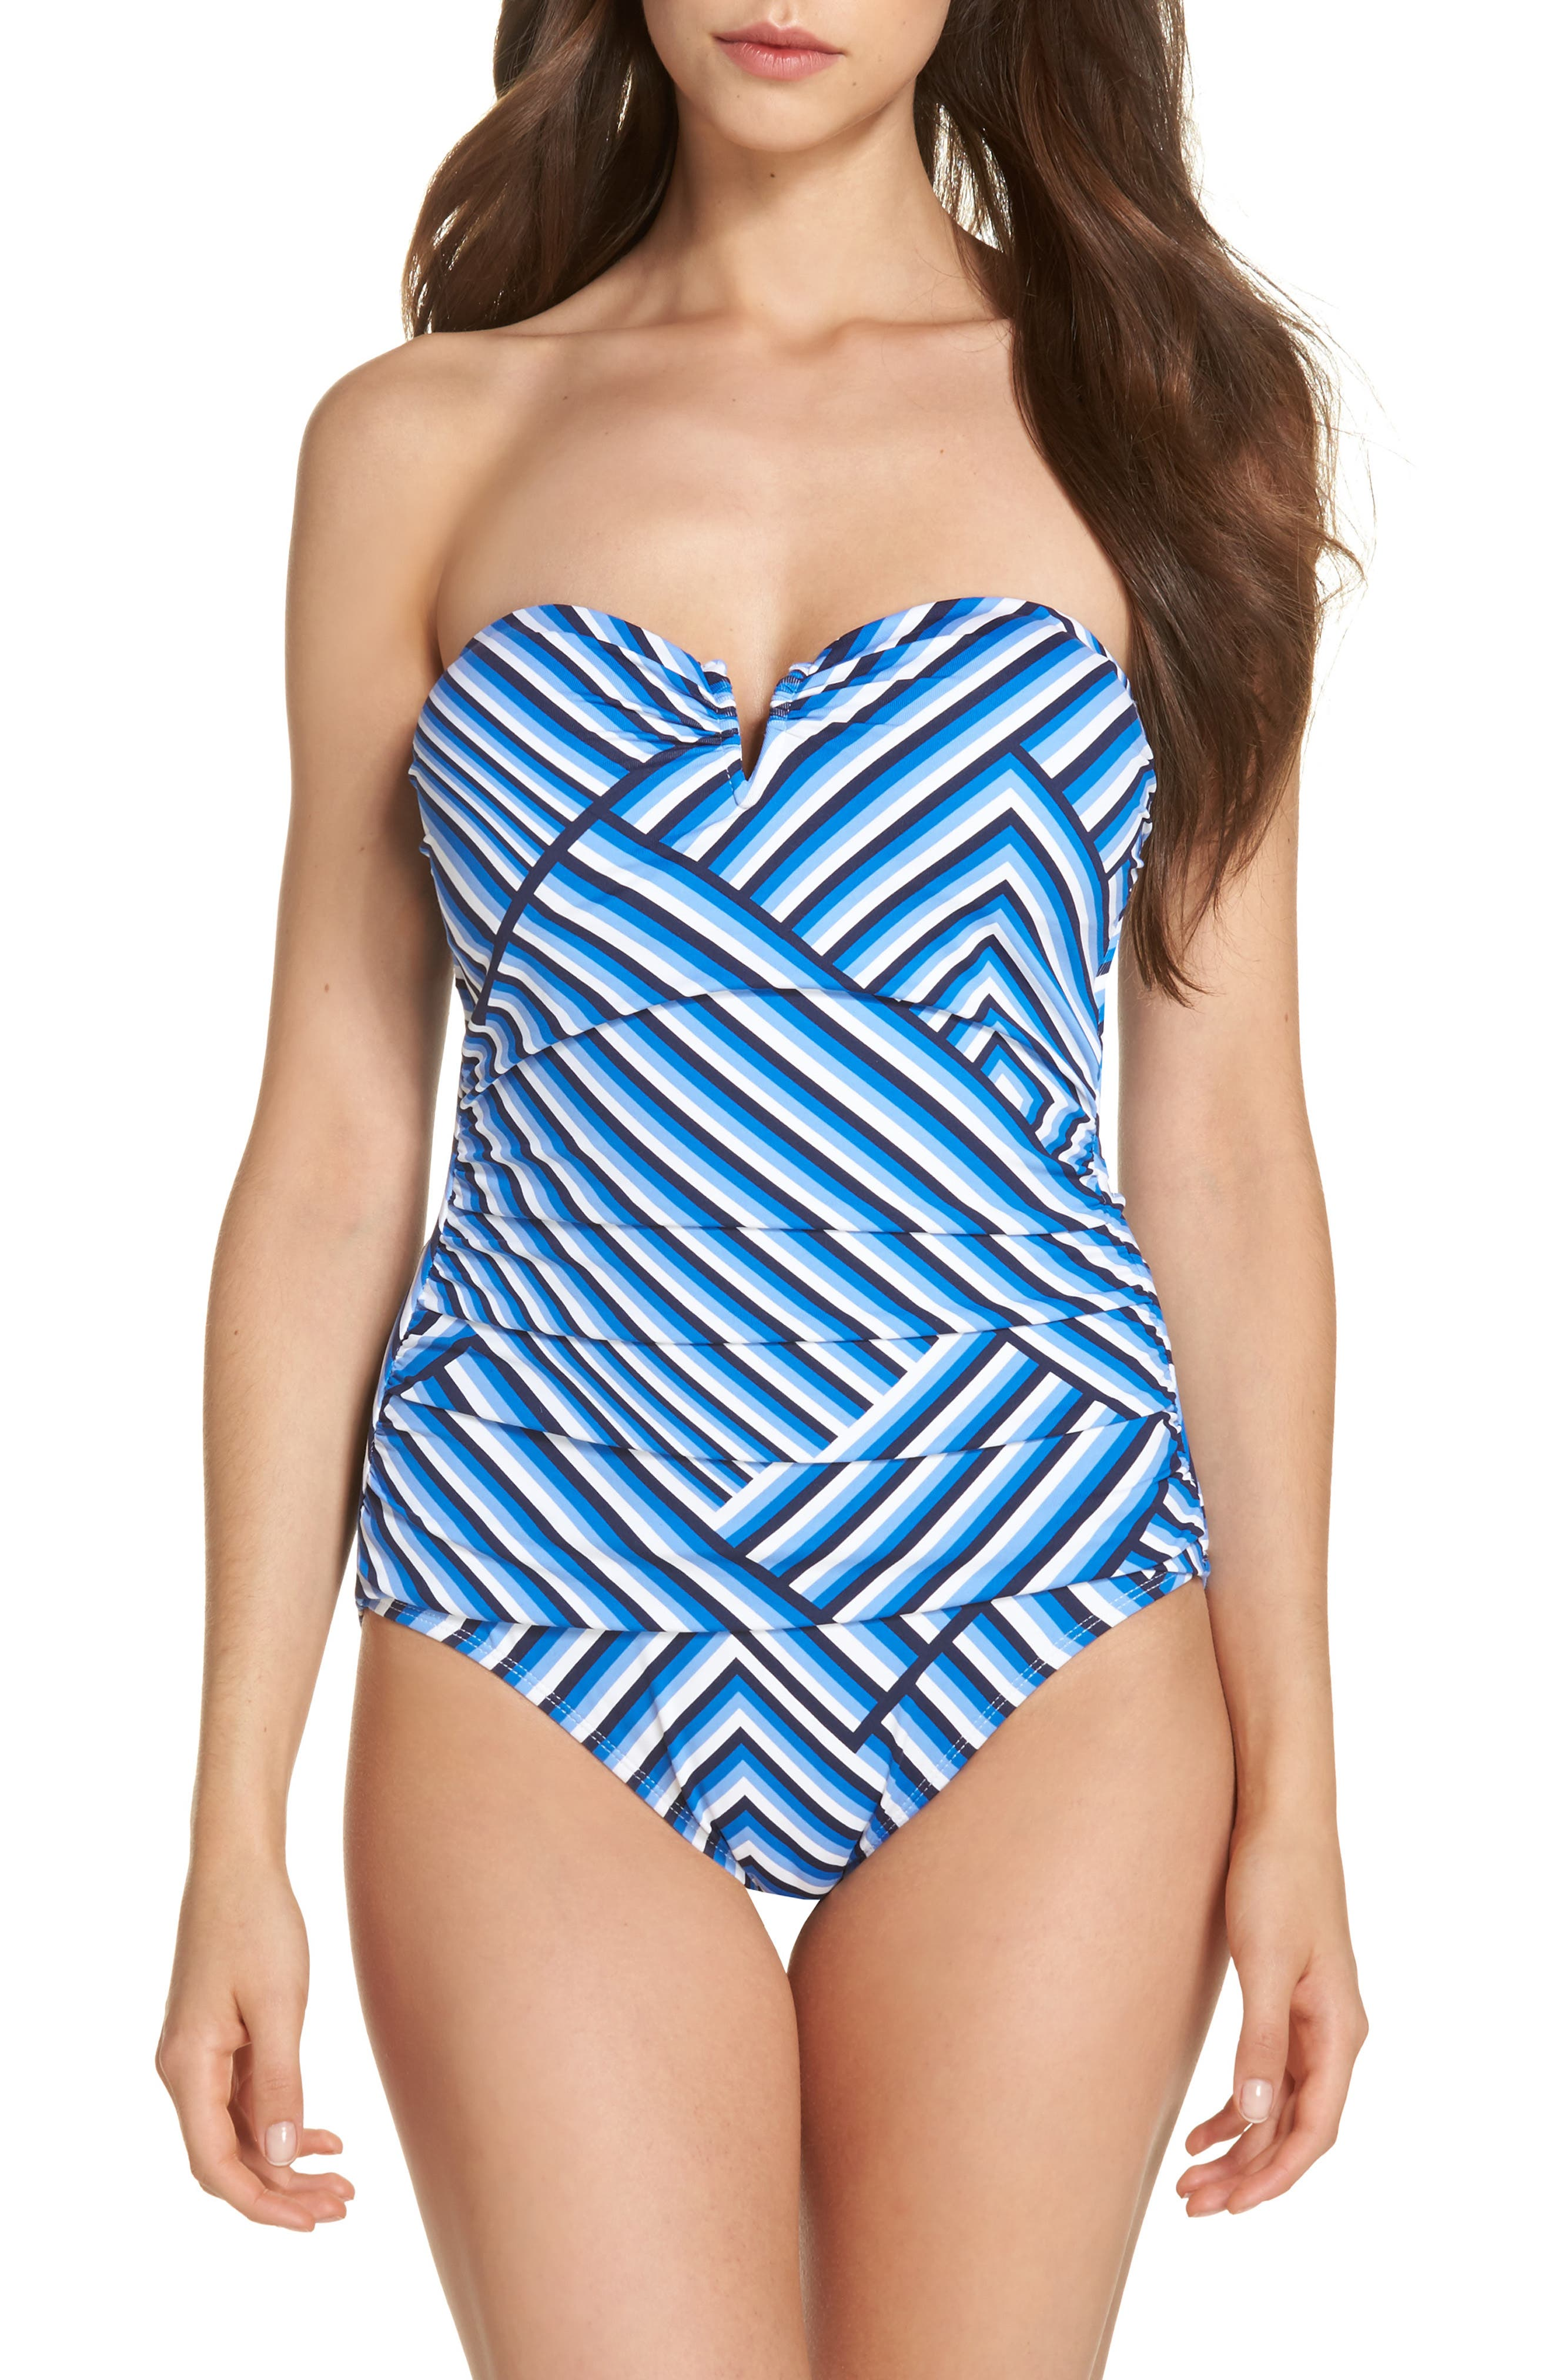 Fuller Fronds Strapless One-Piece Swimsuit,                         Main,                         color, White